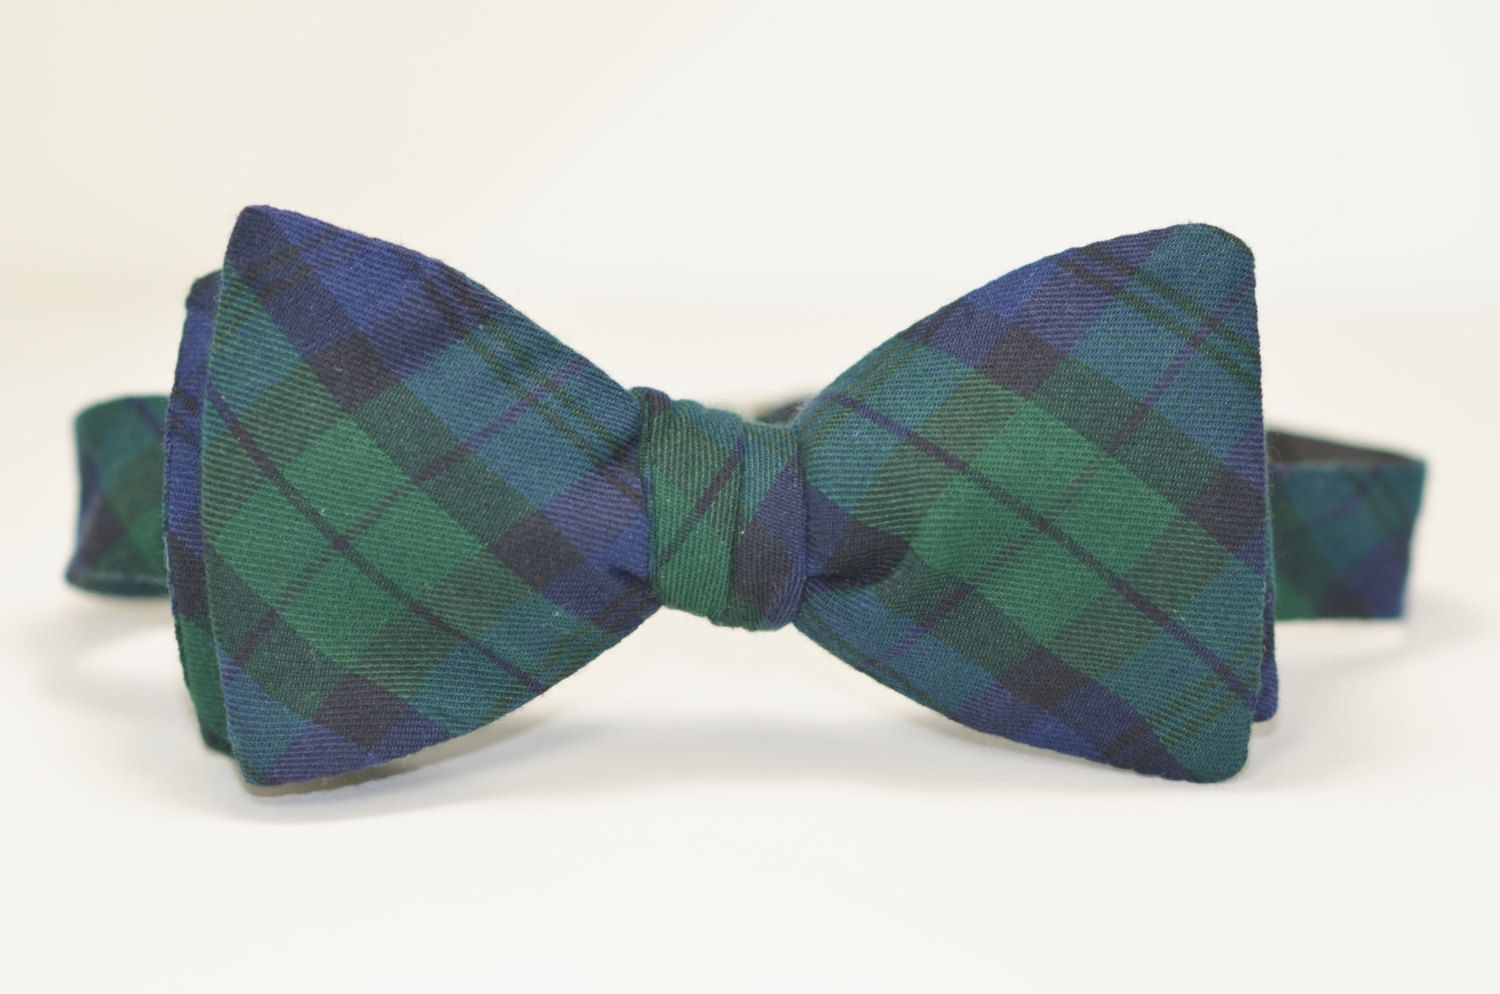 fea838f3ce5d Mens Bowtie, Freestyle Men's Bow Tie, Navy and Green Tartan Plaid Bow Tie, Blackwatch  Plaid Tie by MeandMatilda on Etsy